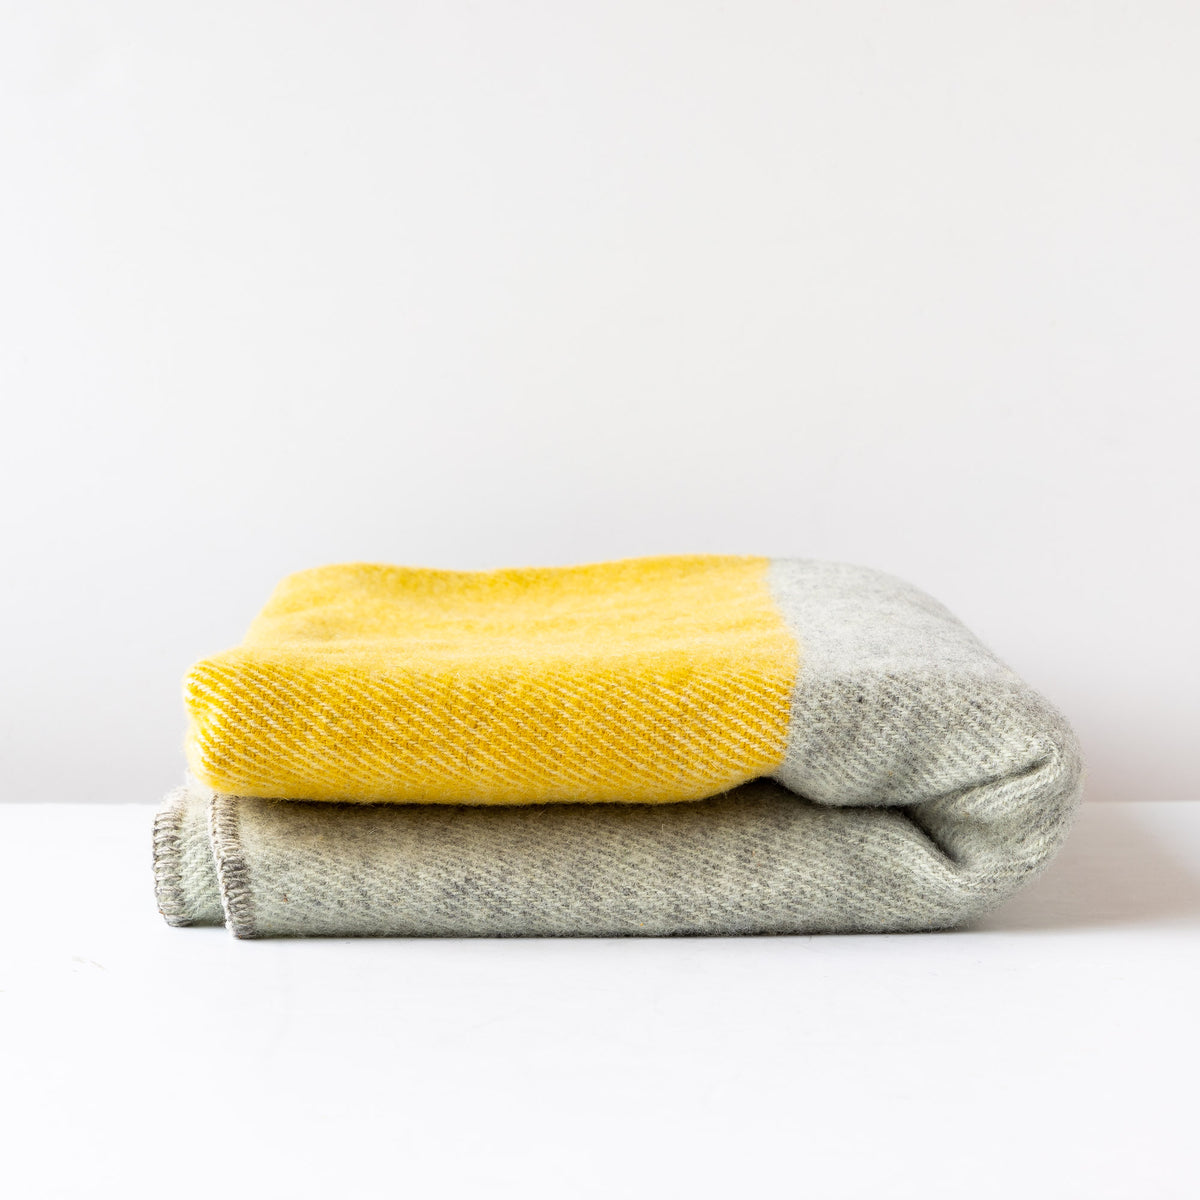 Yellow & Grey - Large 100% Virgin Wool Throw - East Friesian - Sold by Chic & Basta